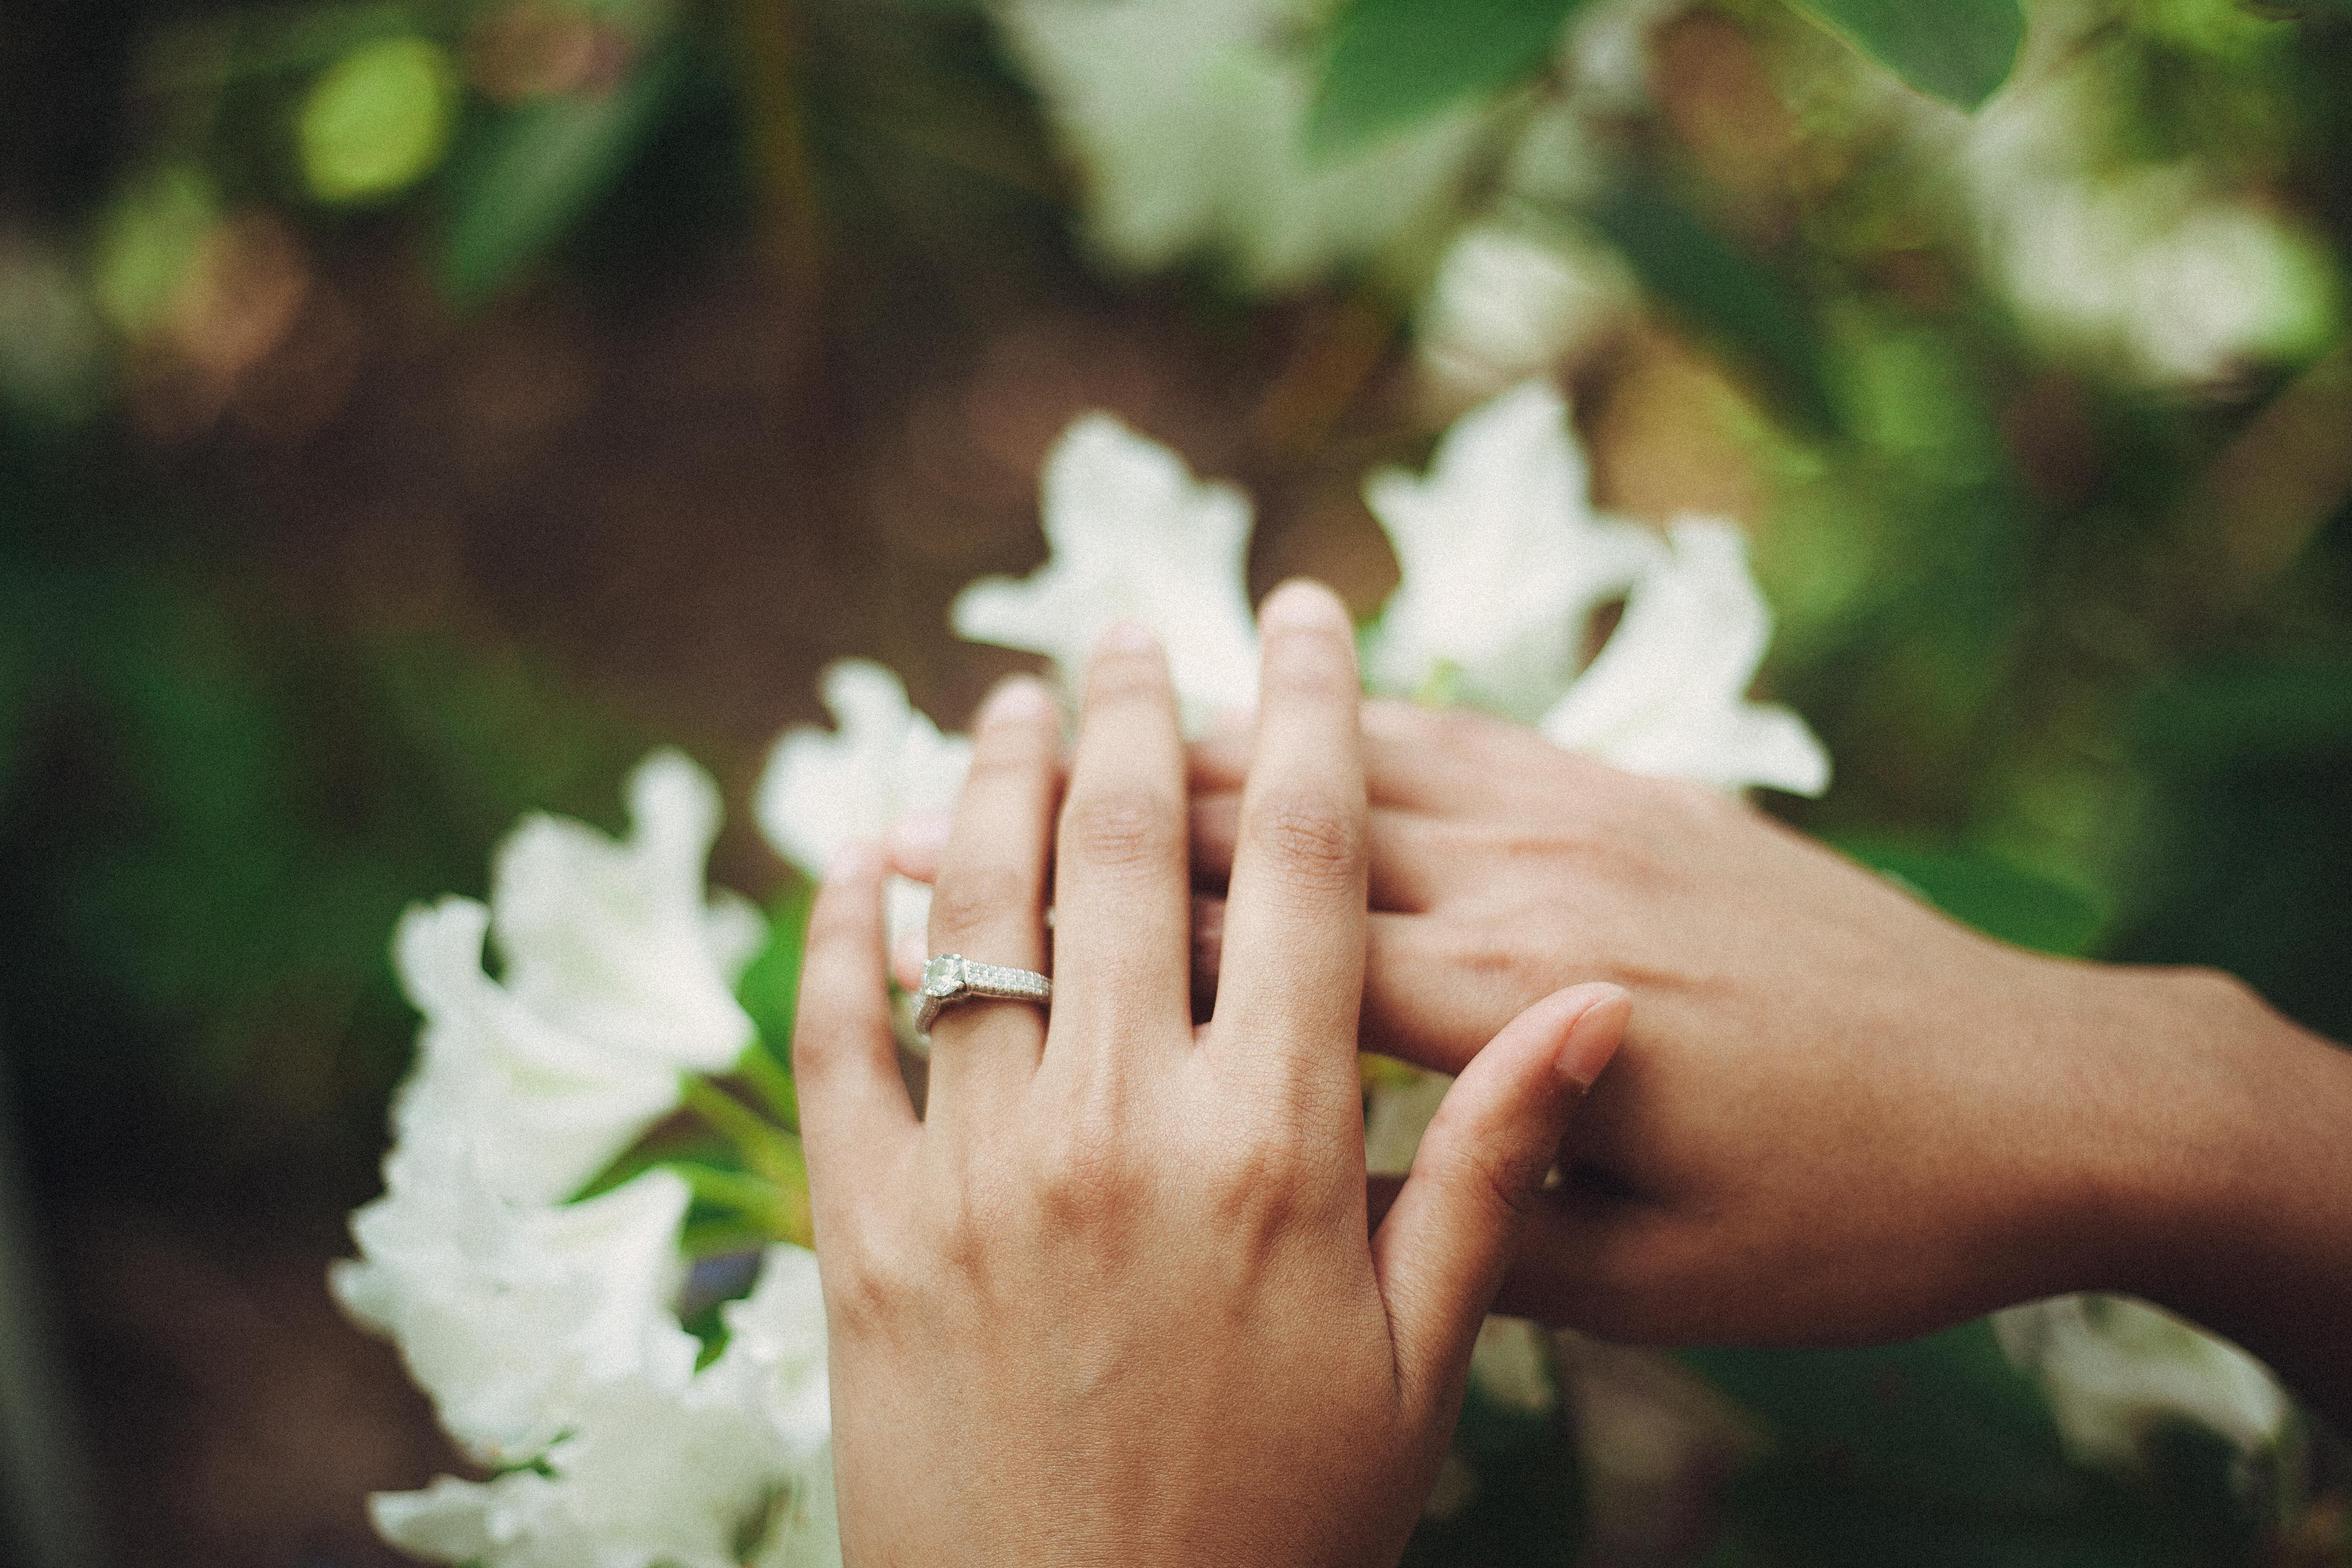 A woman's hand with an engagement ring   Photo: Pexels